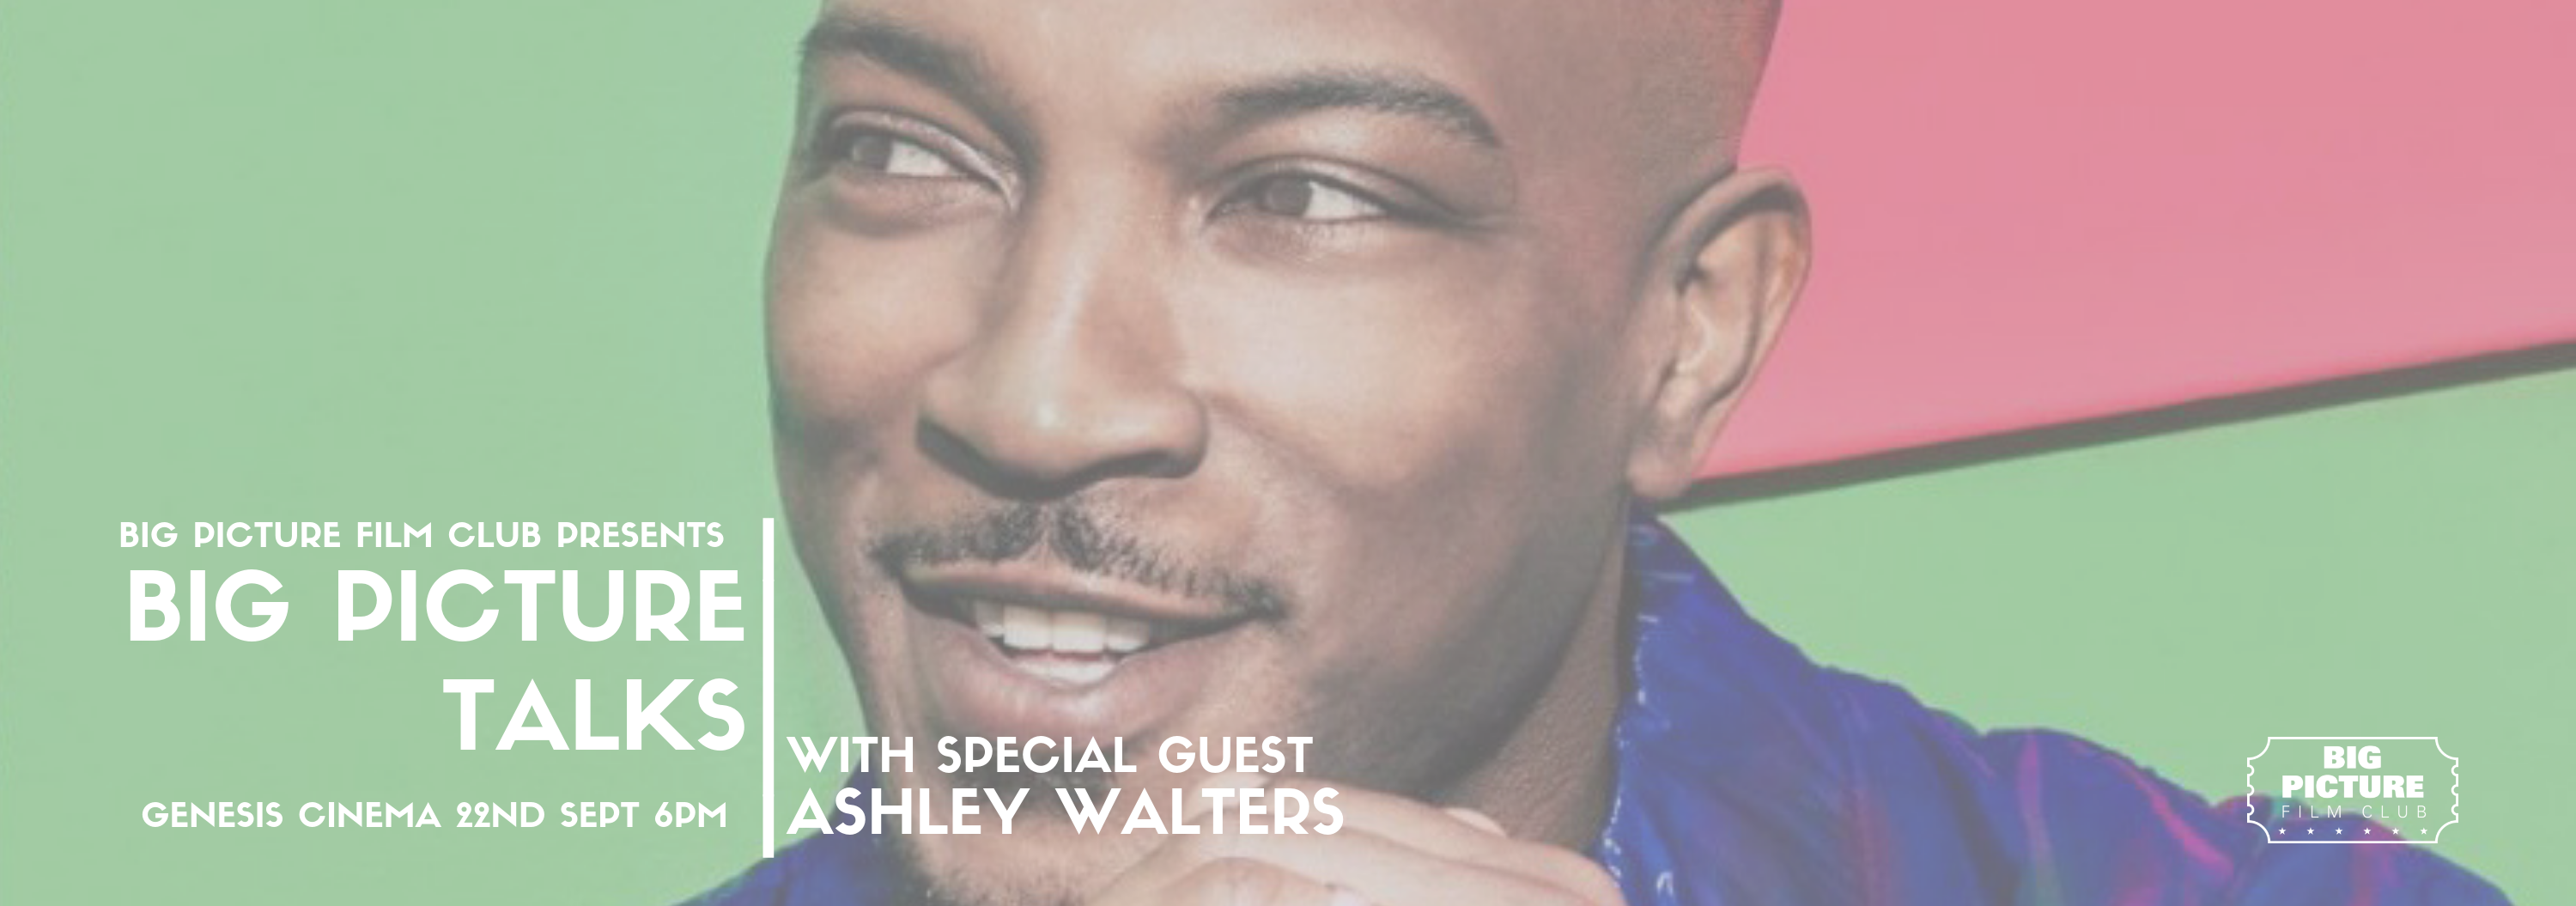 Big Picture Talks - Ashley Walters - Banner